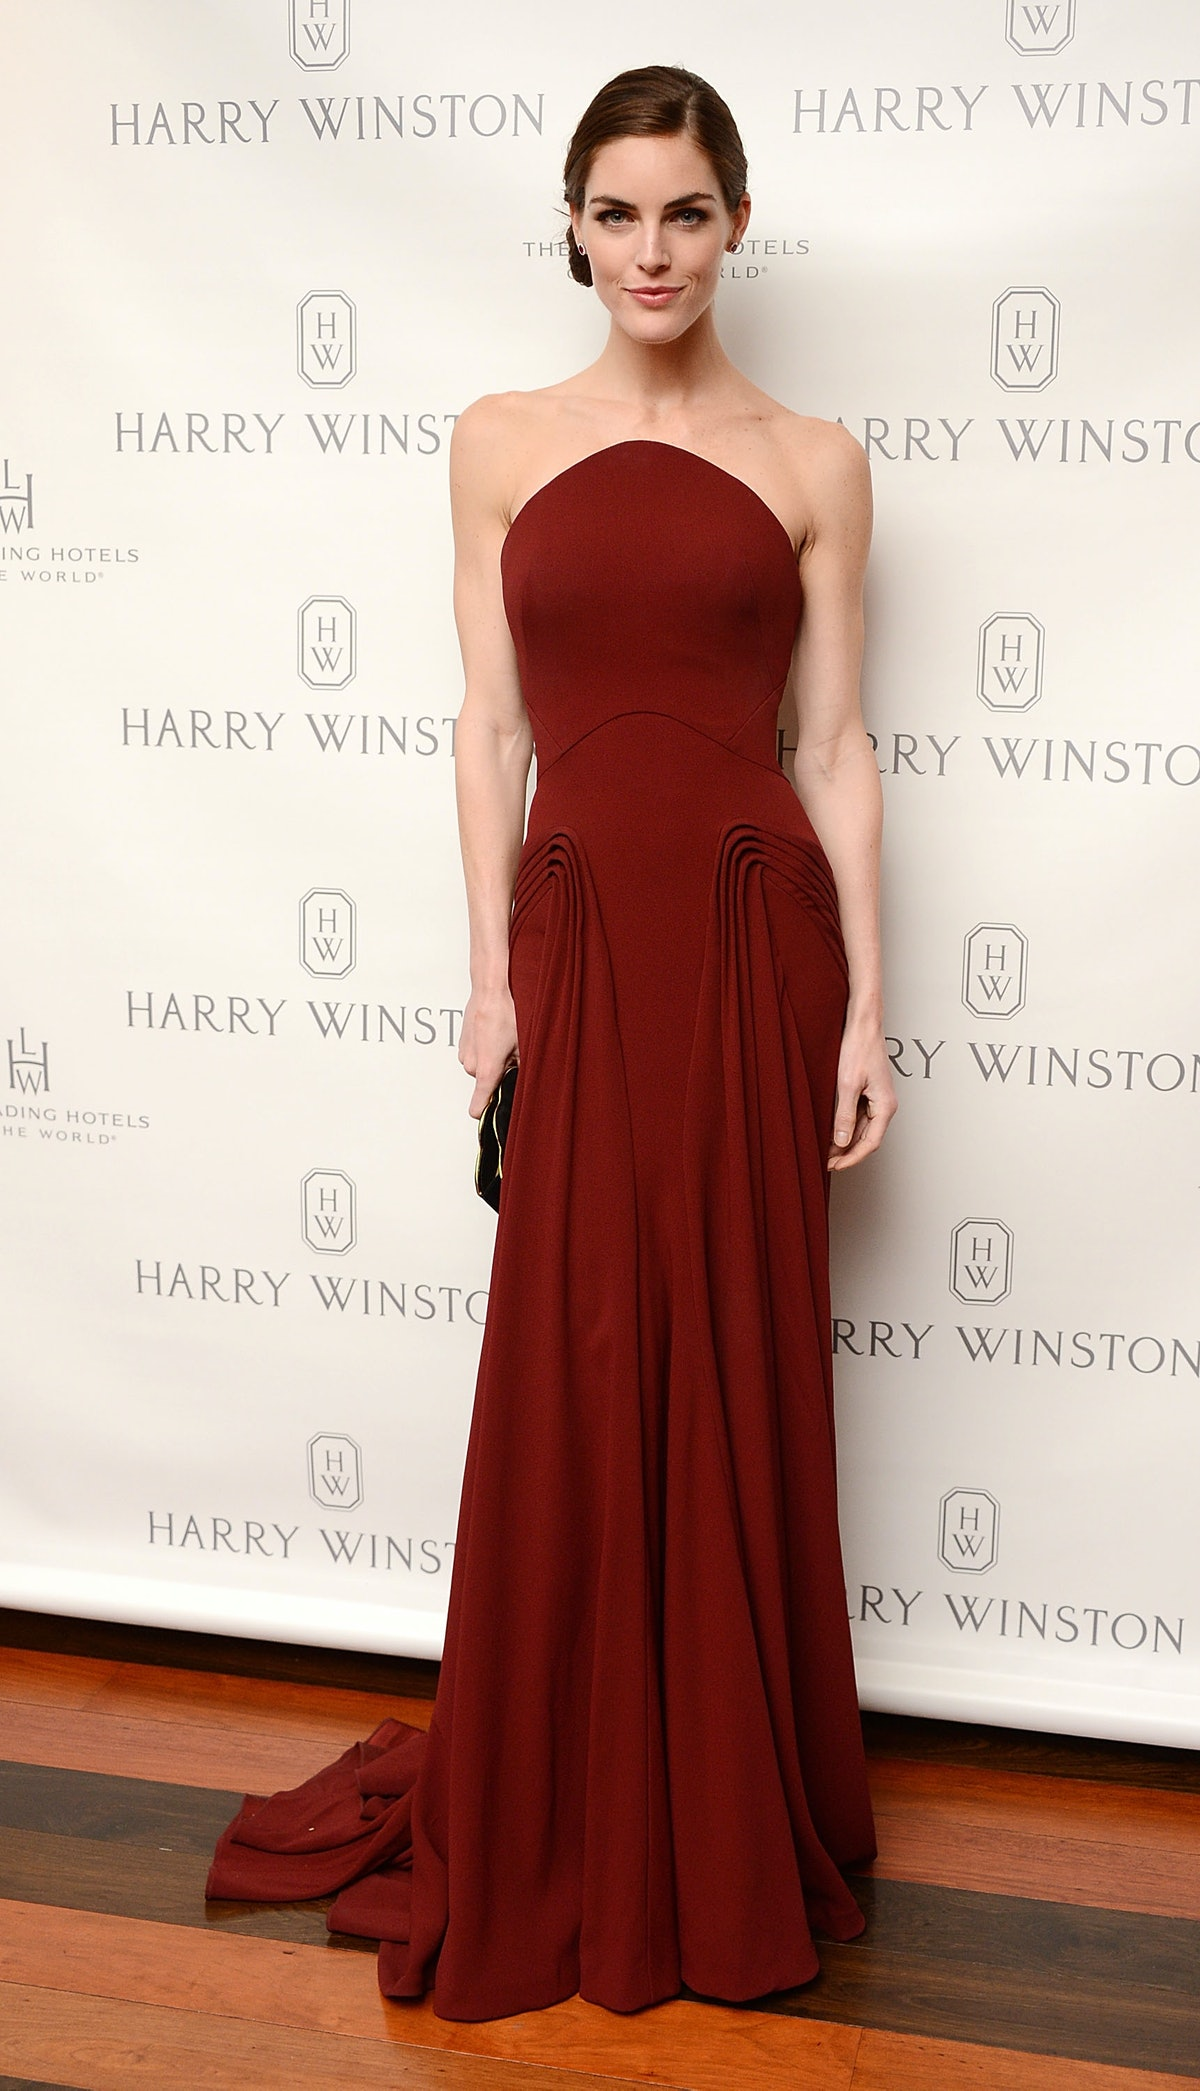 Harry Winston Hosts A Dinner For Jessica Chastain At The Leading Hotels Of The World's Setai